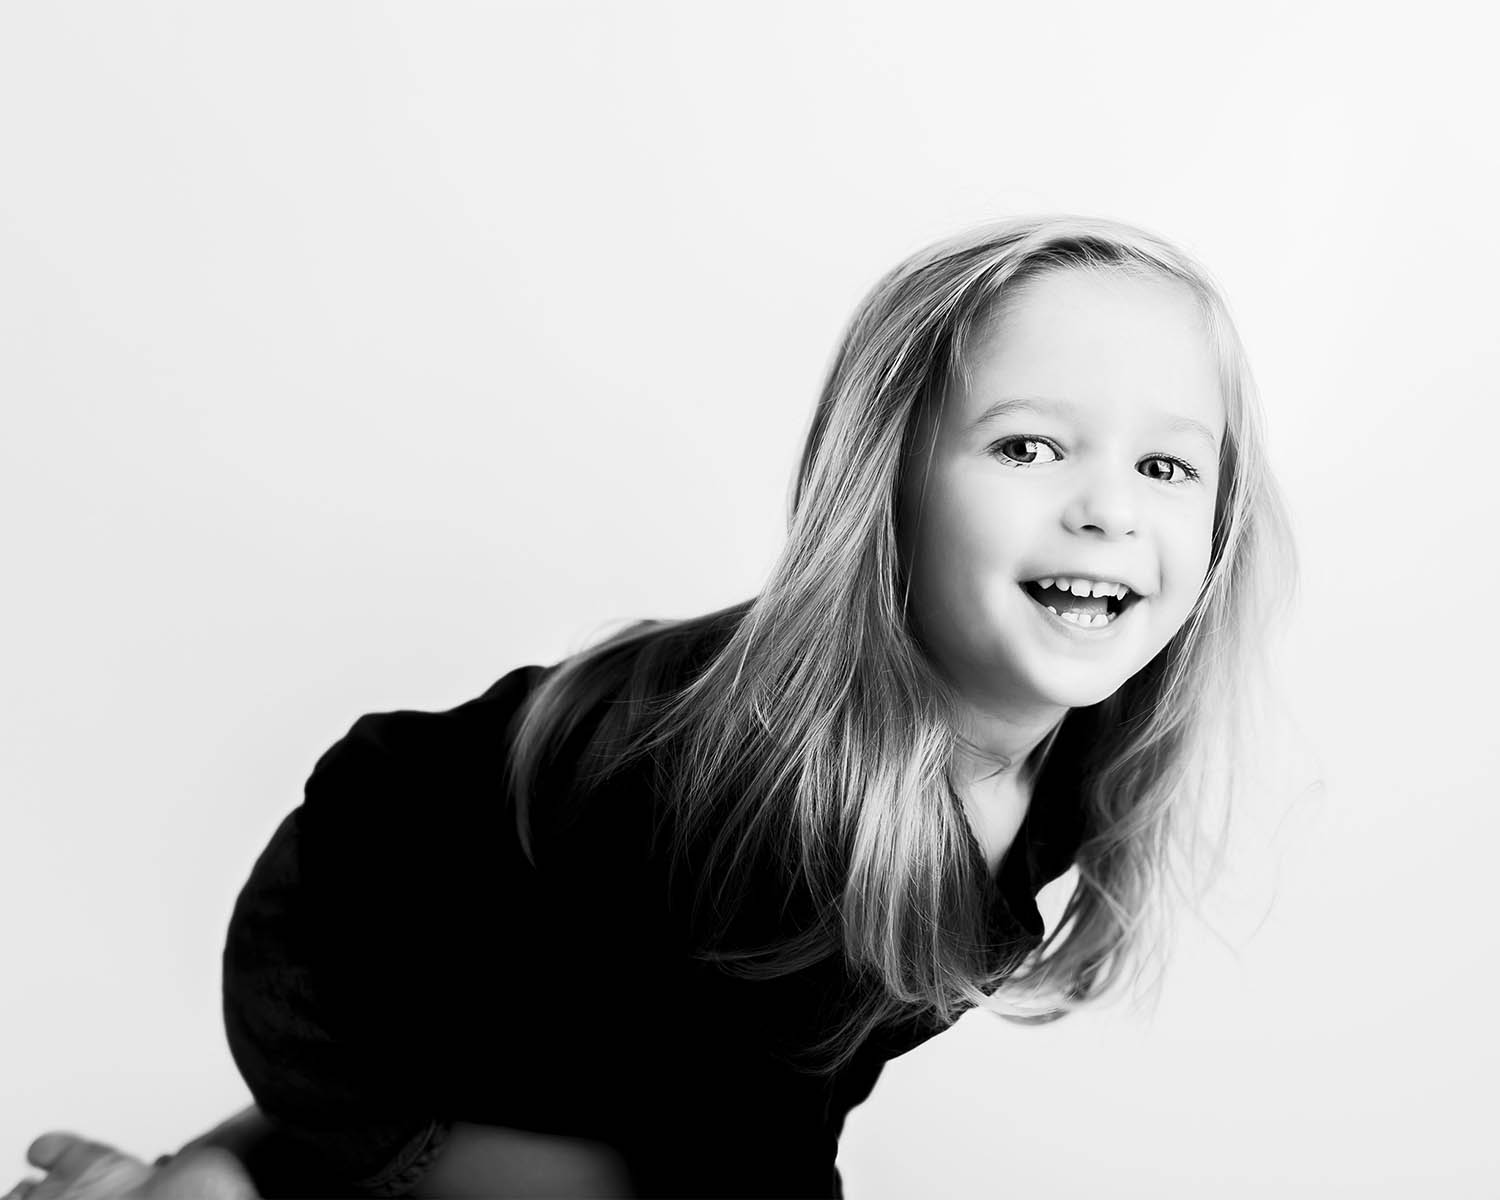 studio portrait of a little girl in black and white